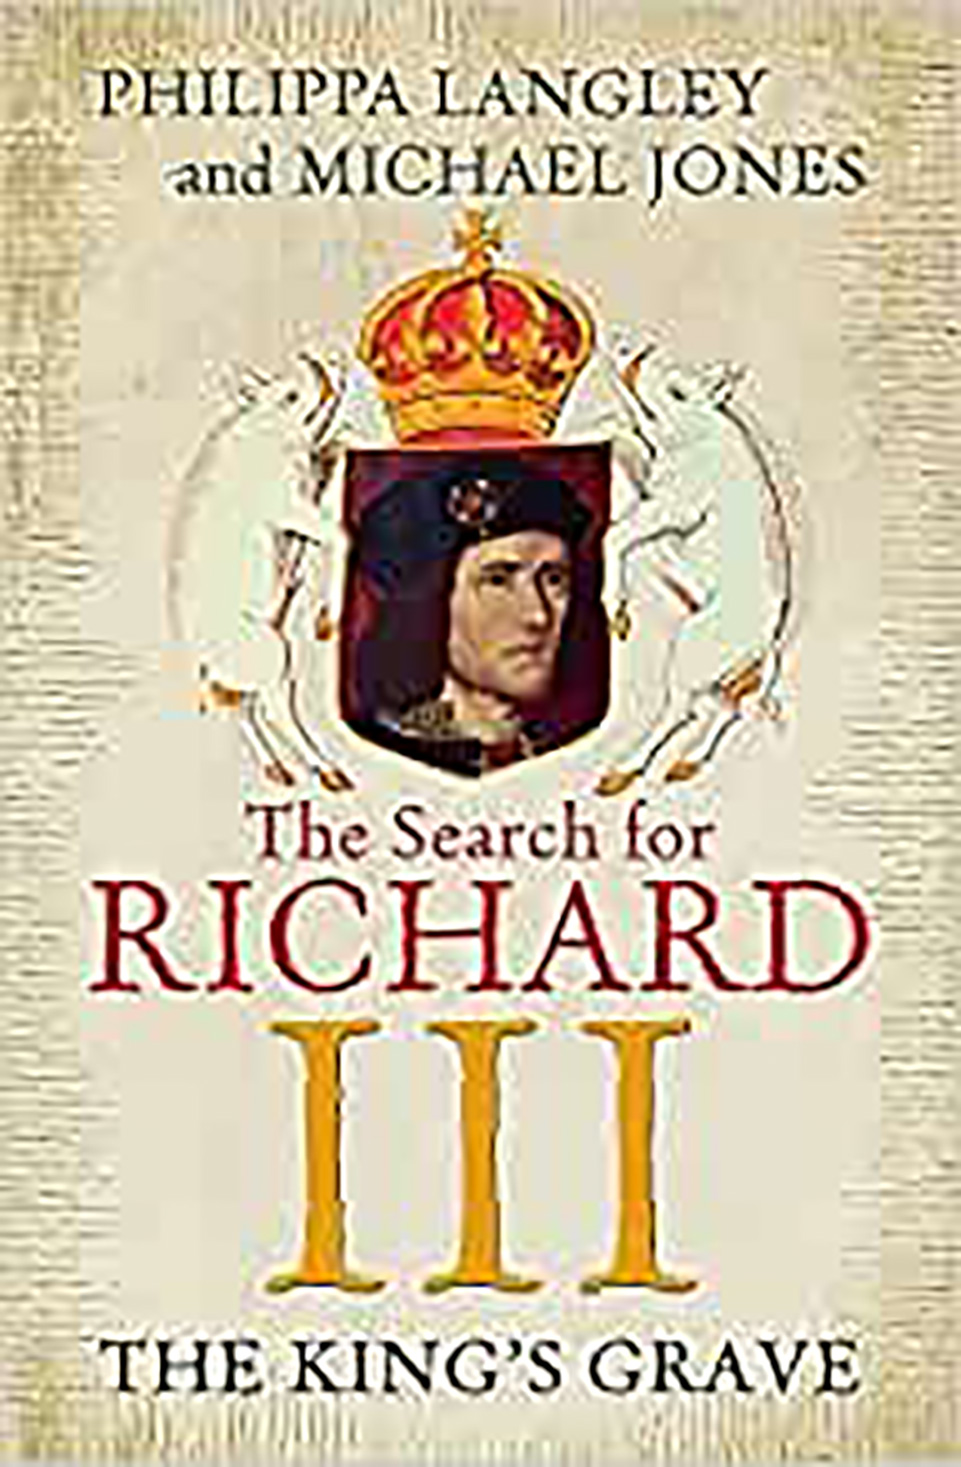 Front cover of a book: The Search for Richard III The King's Grave by Philippa Langley and Michael Jones